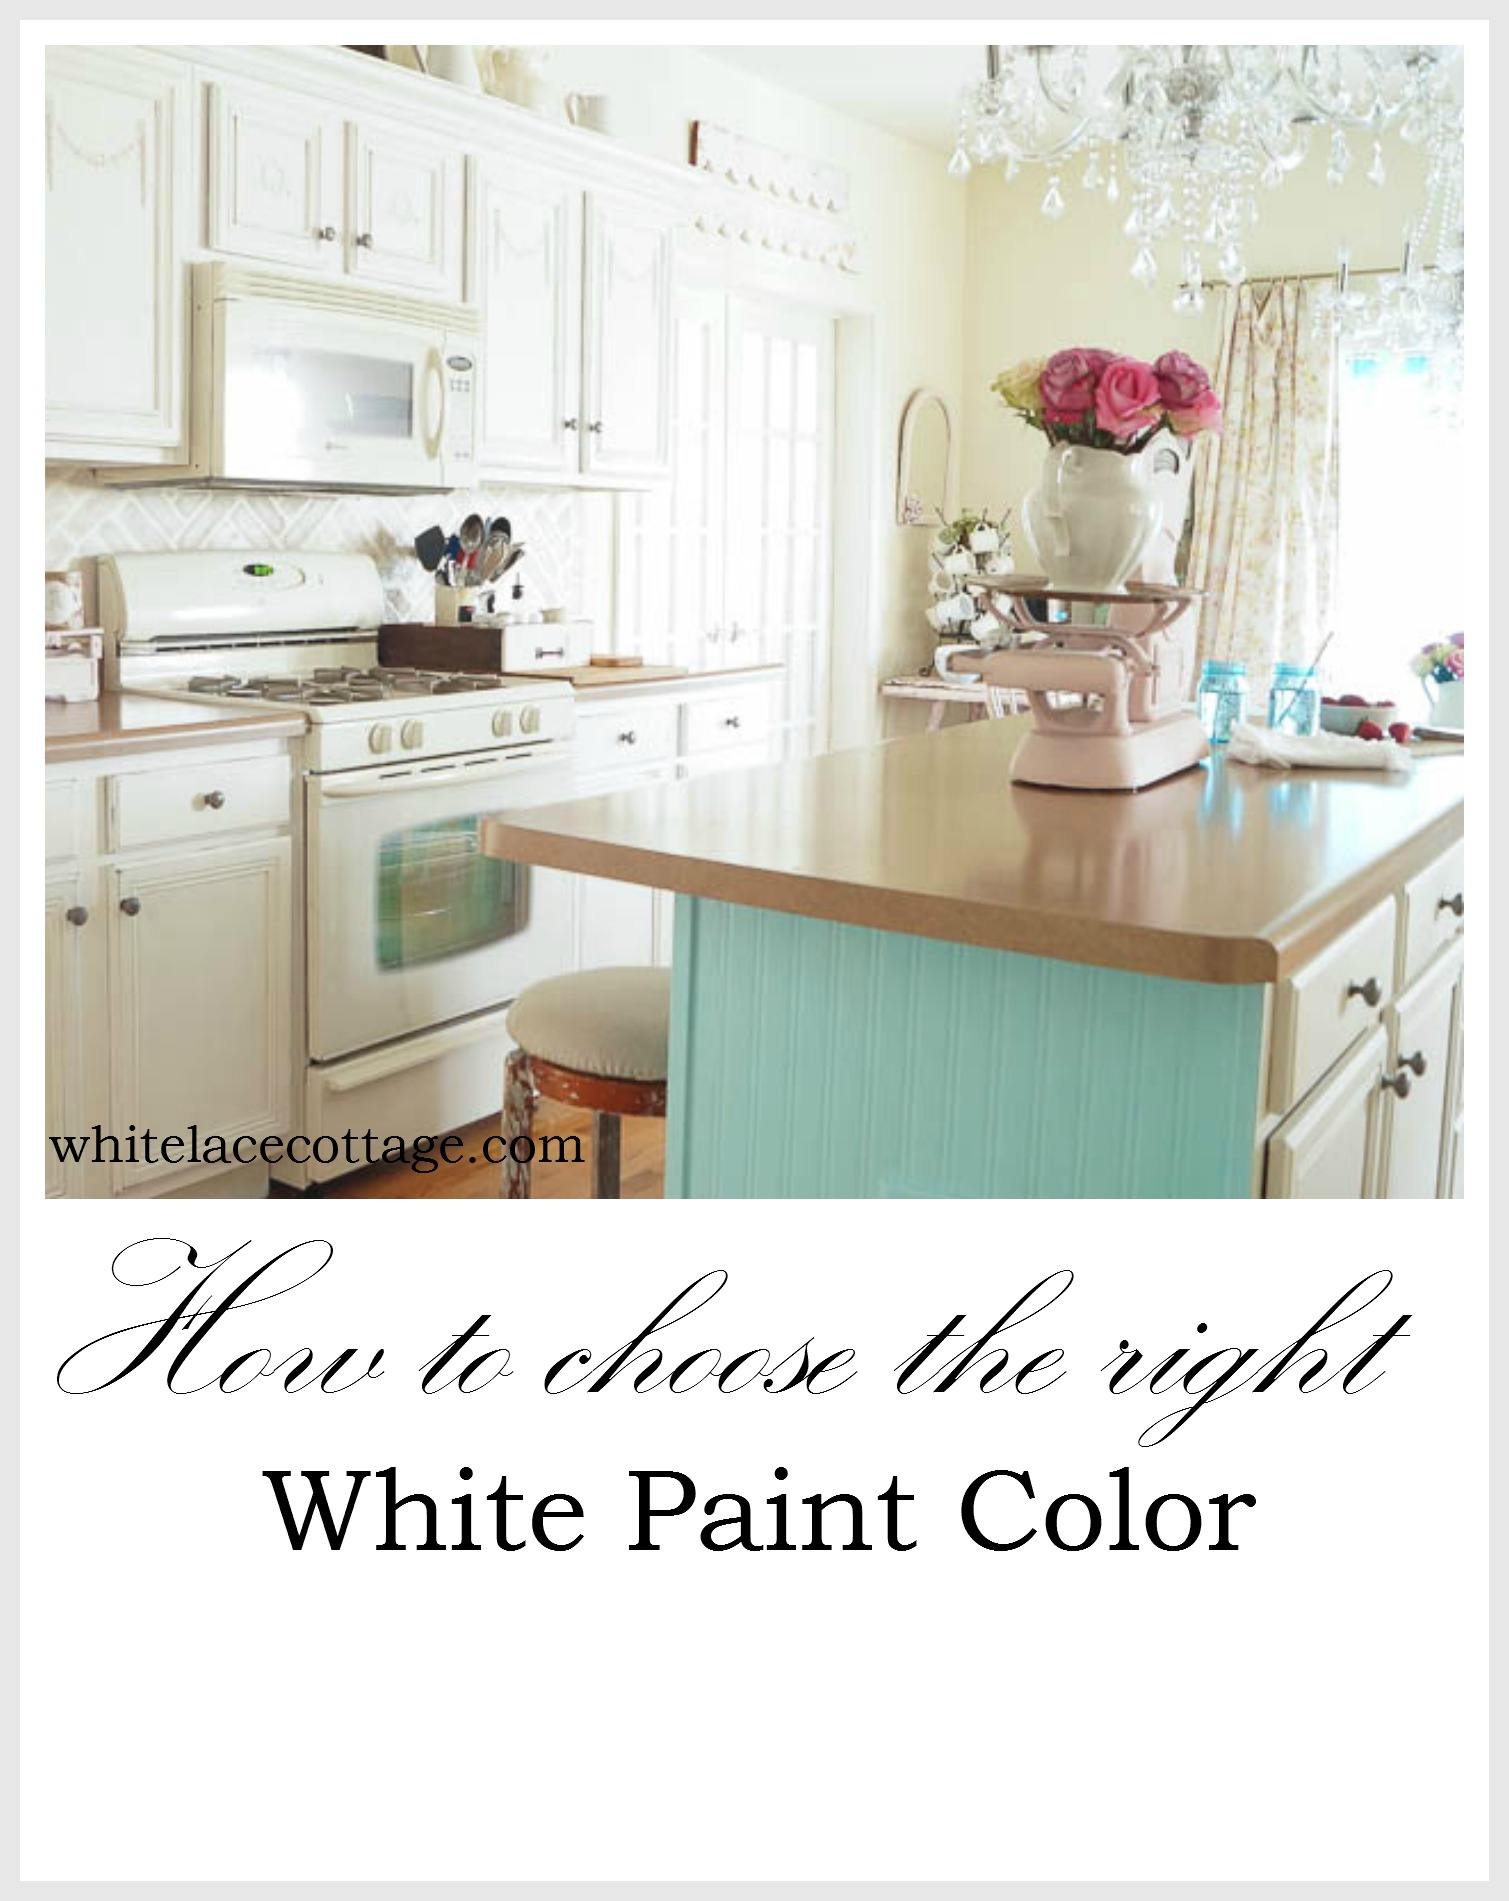 How to choose the right white paint color white lace cottage for How to choose paint colors